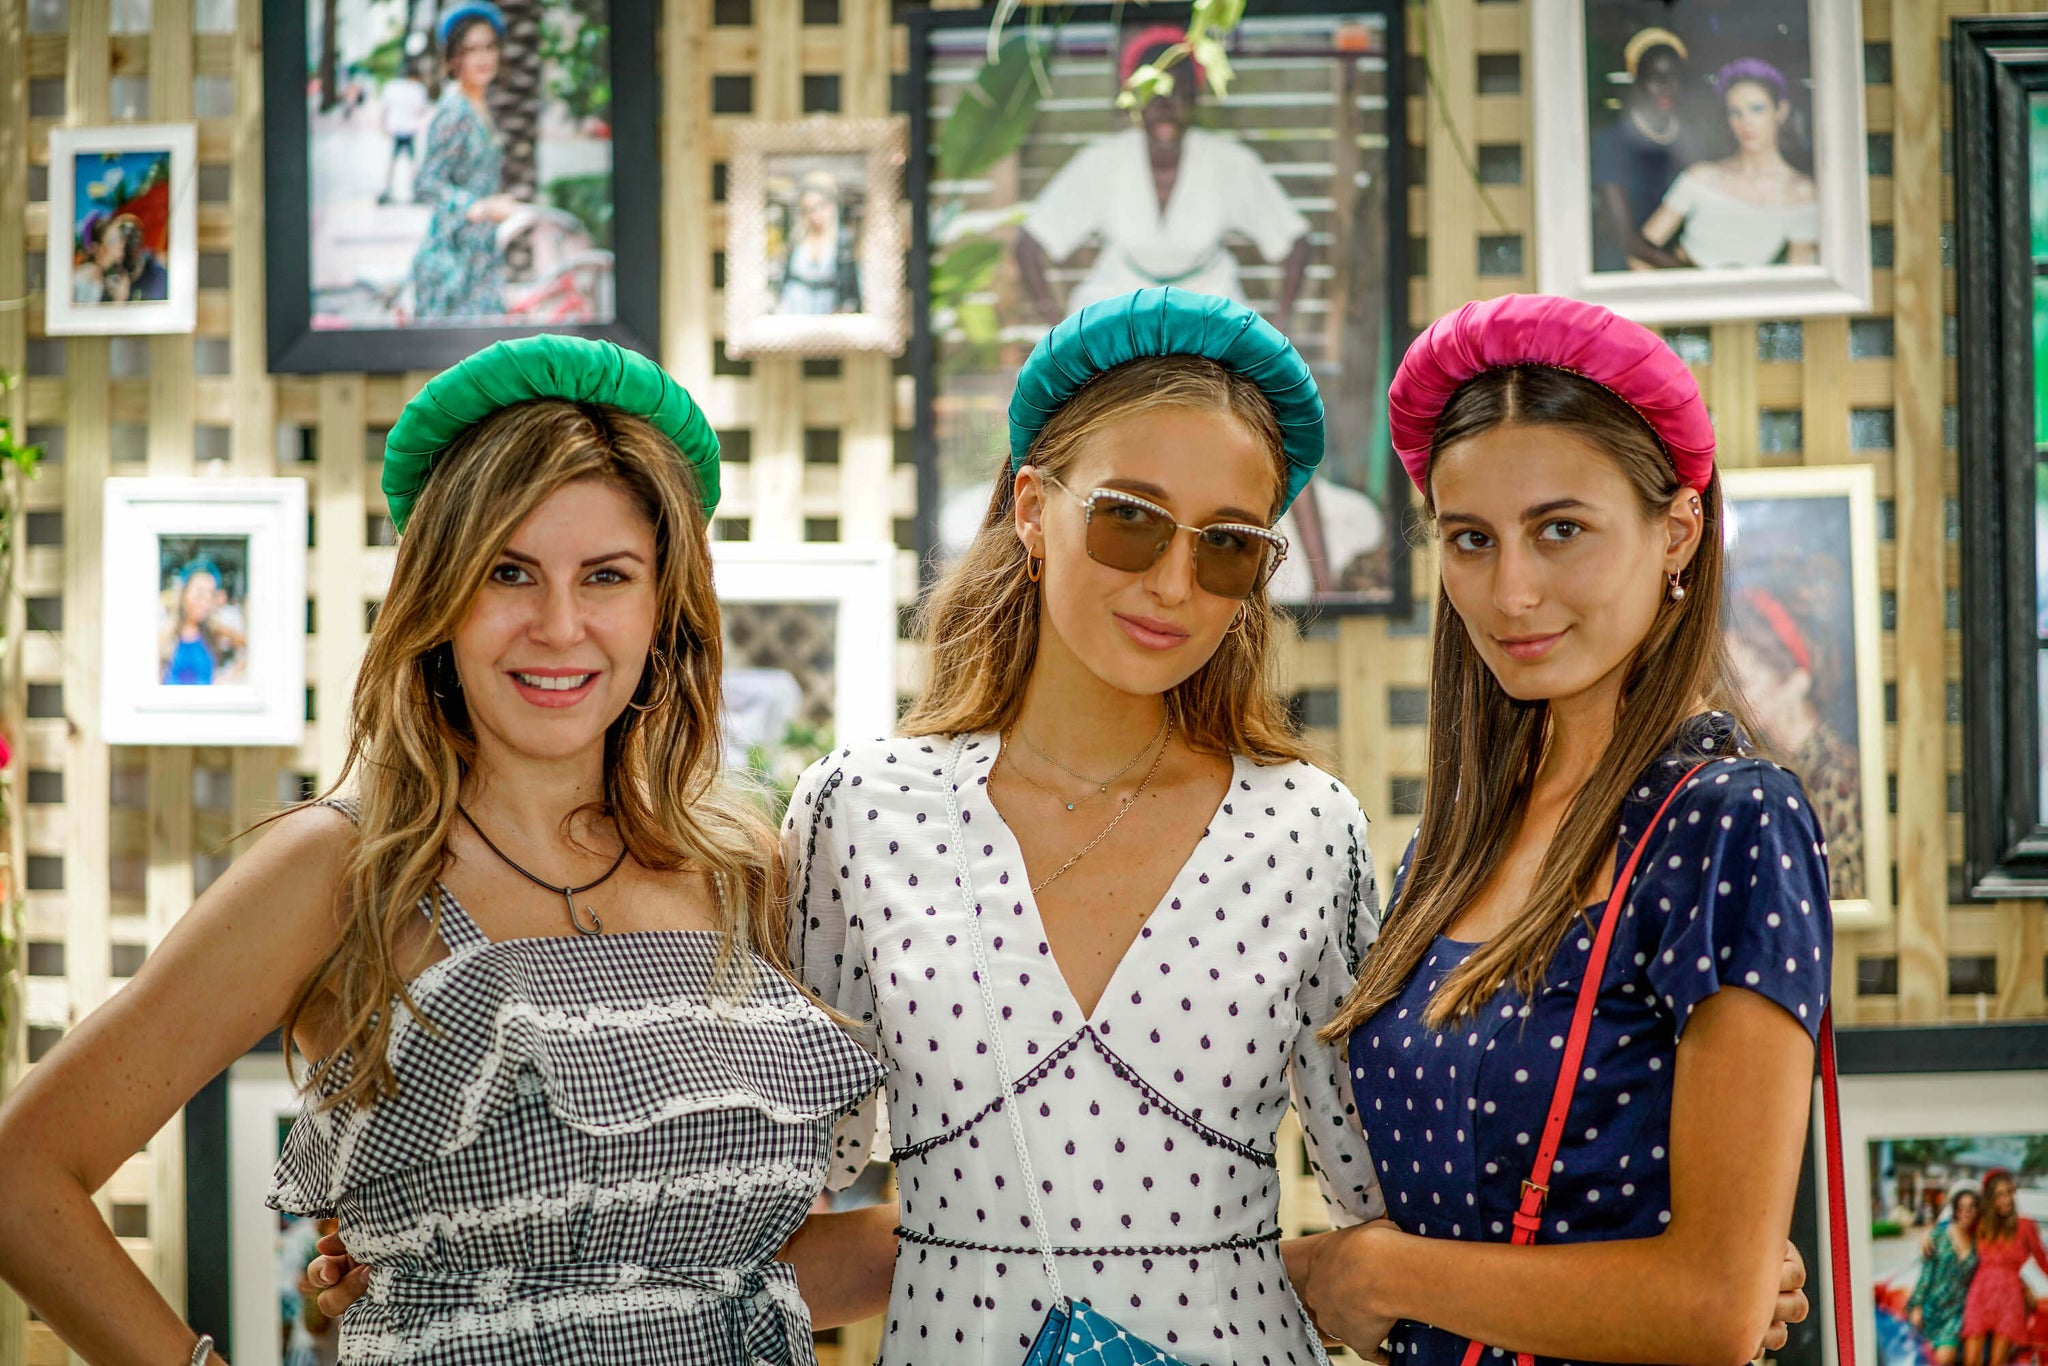 TANYA LITKOVSKA silk headbands & statement hair accessories launching party at Shore Club Hotel South Beach Miami Beach